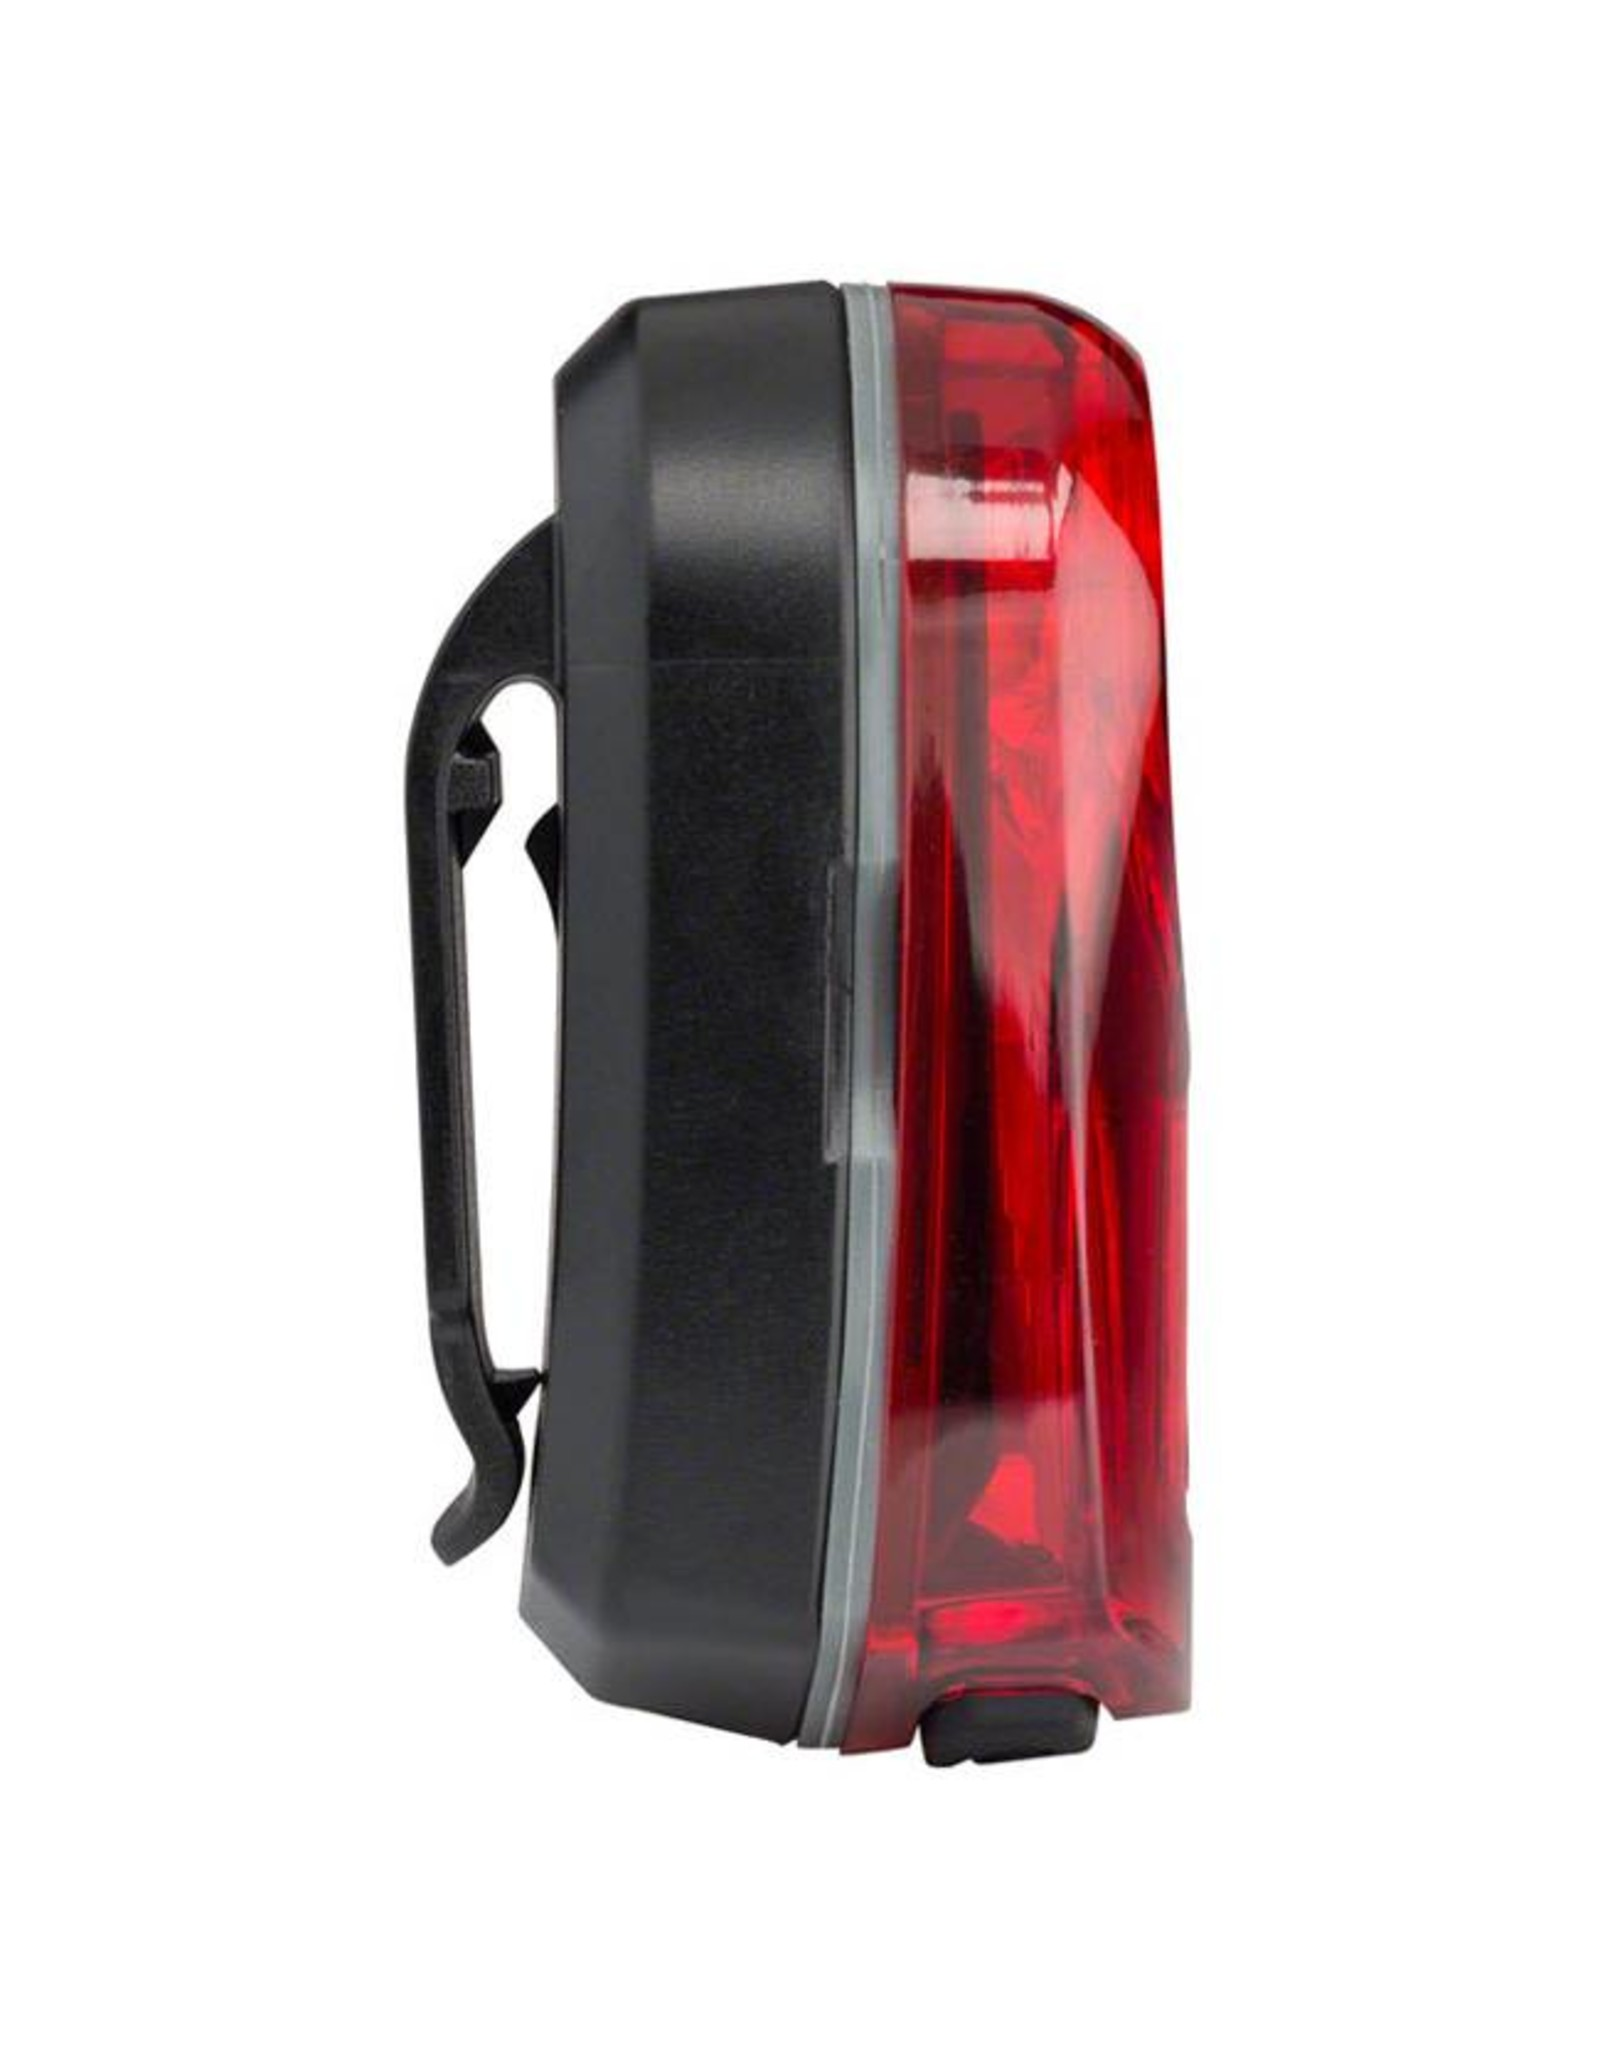 MSW MSW Octodon Rear Taillight with Multiple Lighting Modes: Black